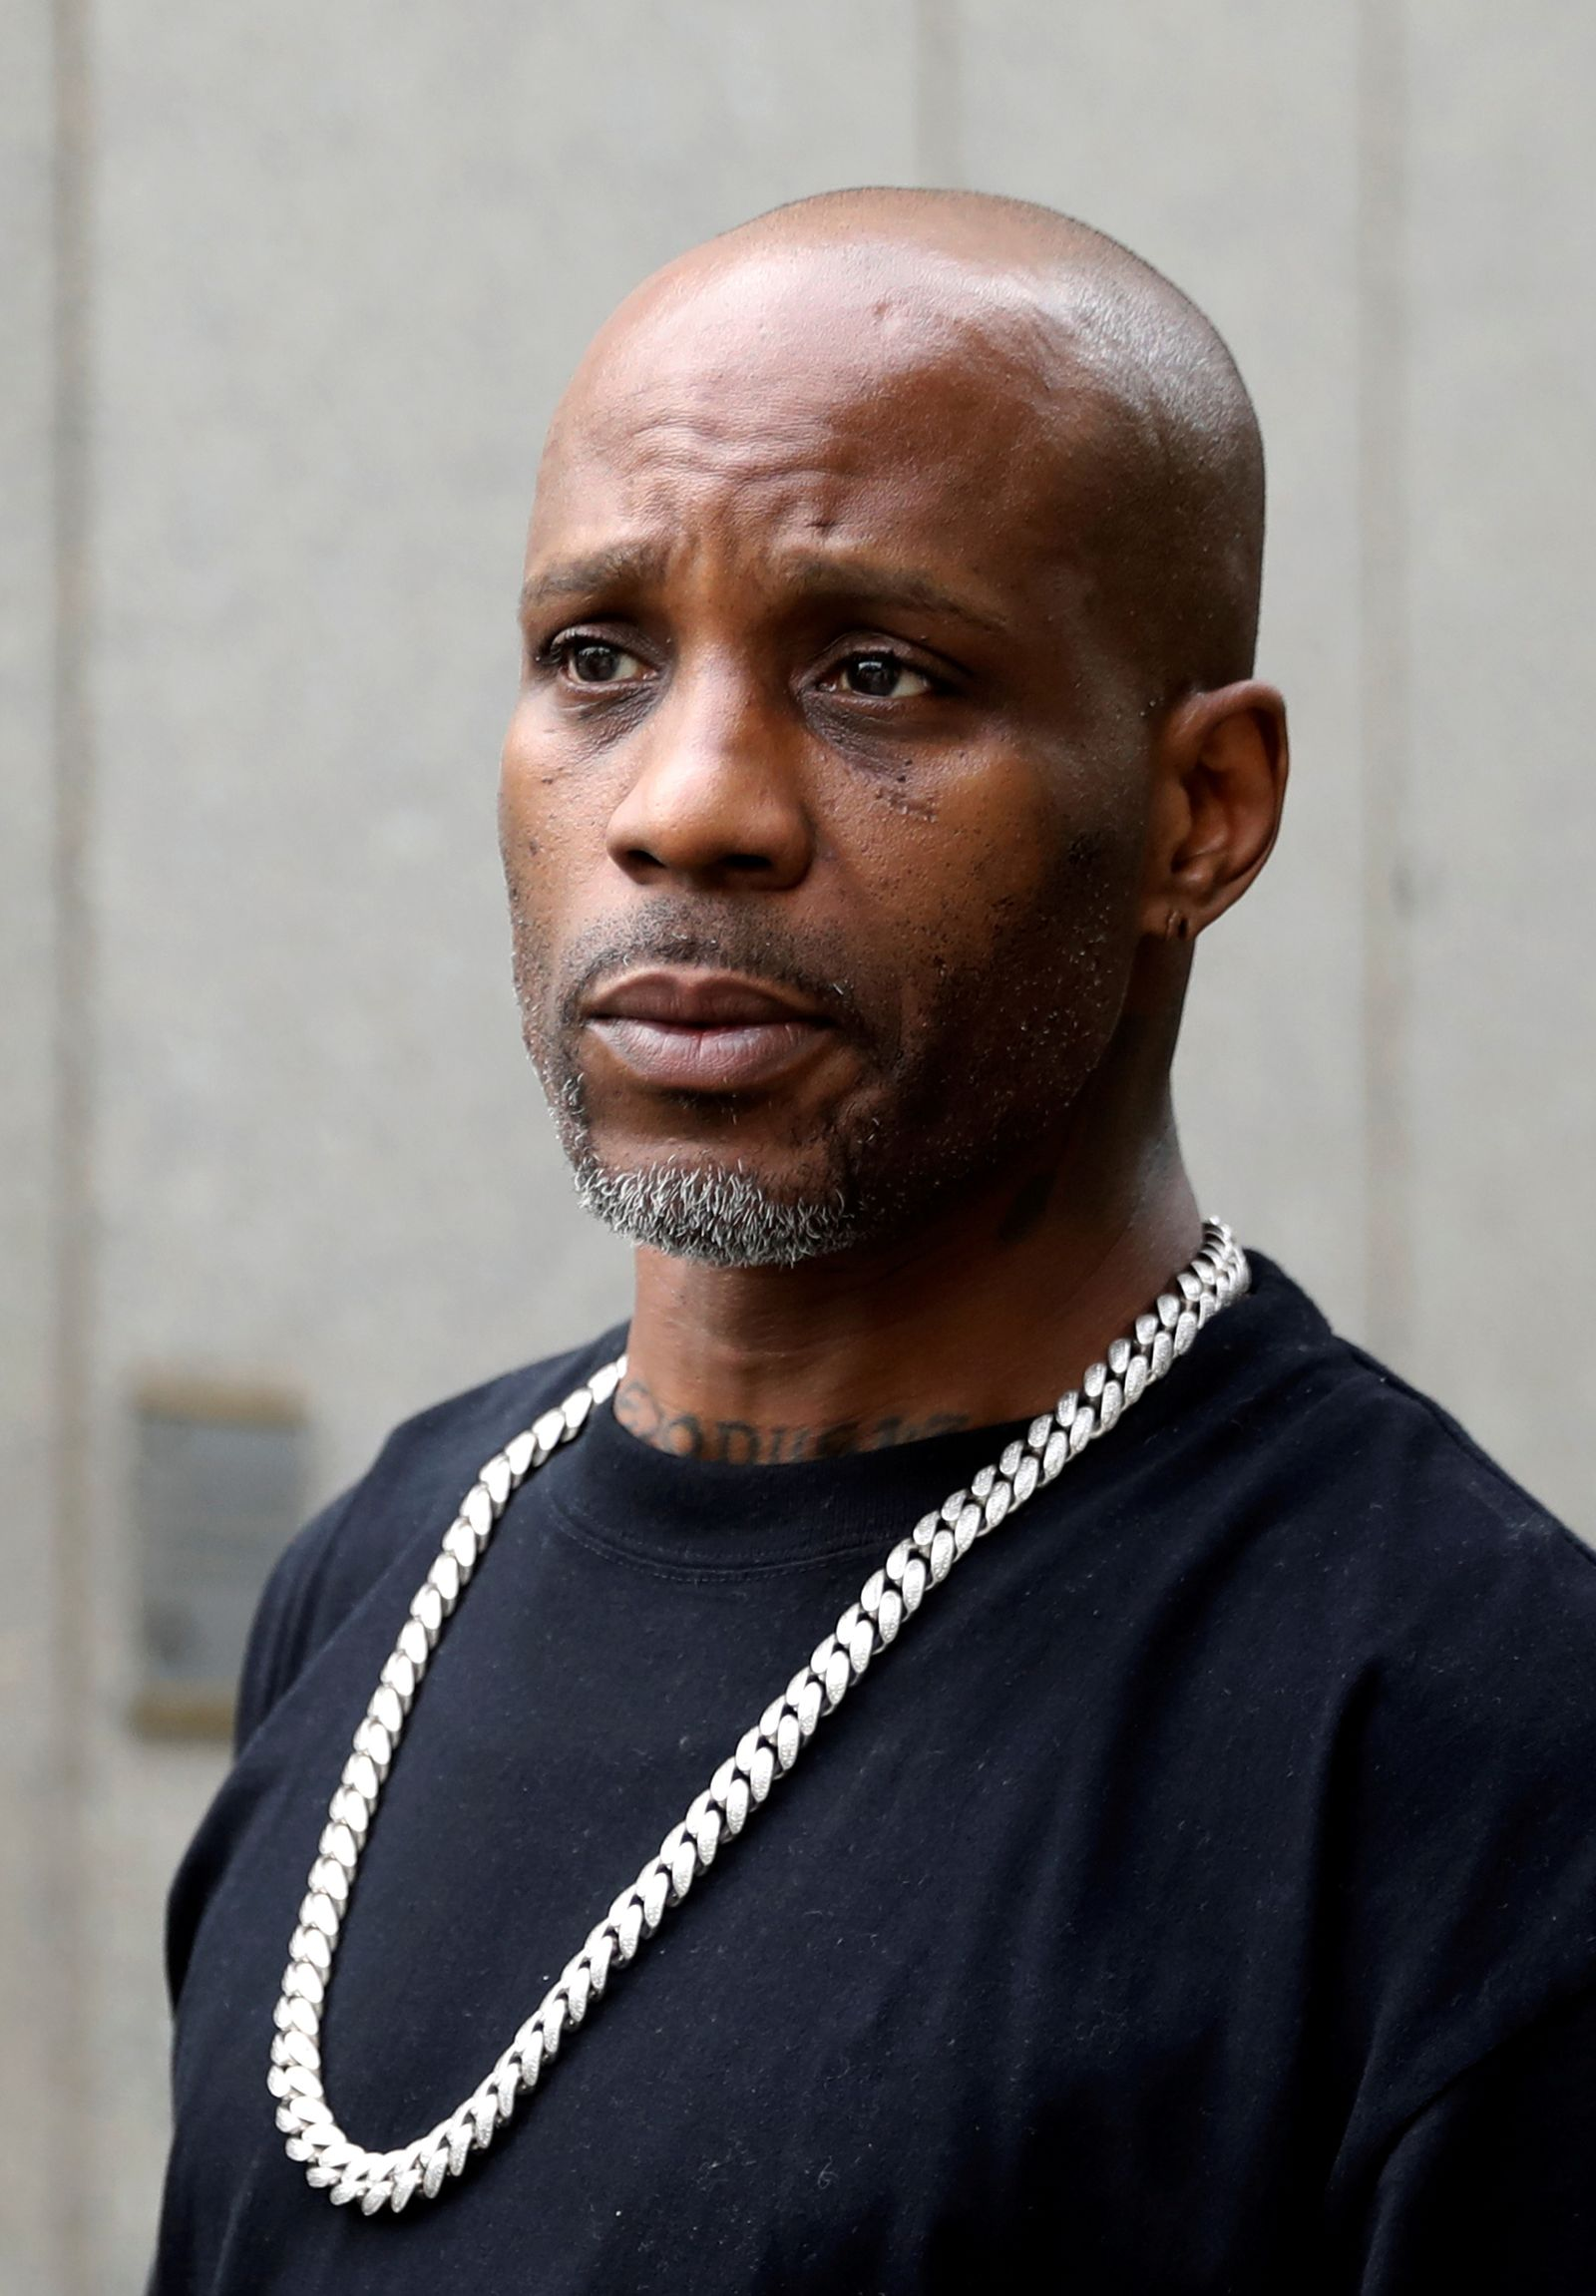 FILE PHOTO: Rapper DMX exits the U.S. Federal Court in Manhattan following a hearing regarding income tax evasion charges in New York